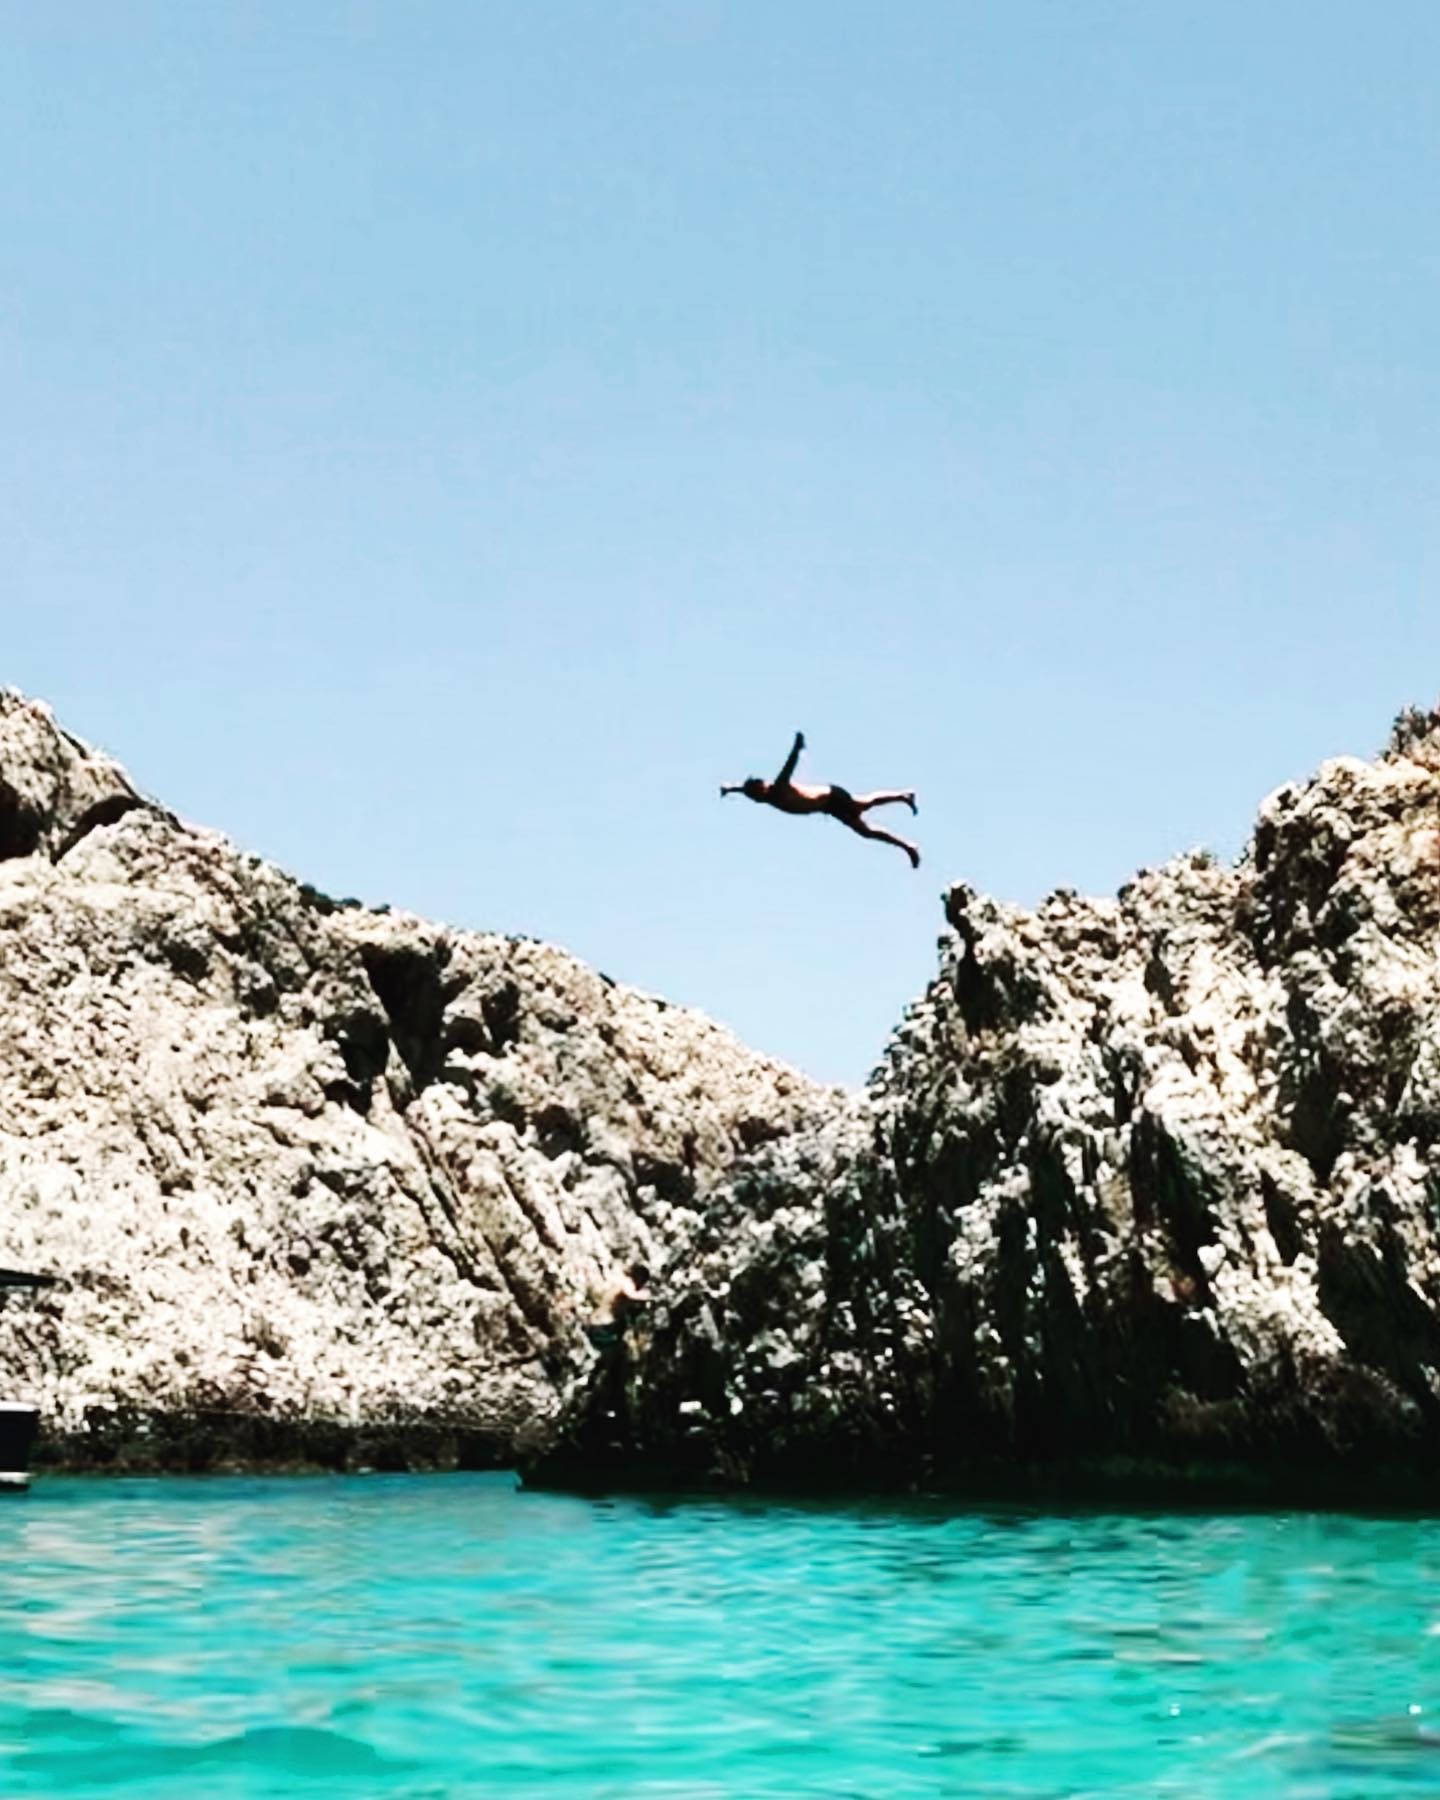 Cliff diving on Crete Island, Greece